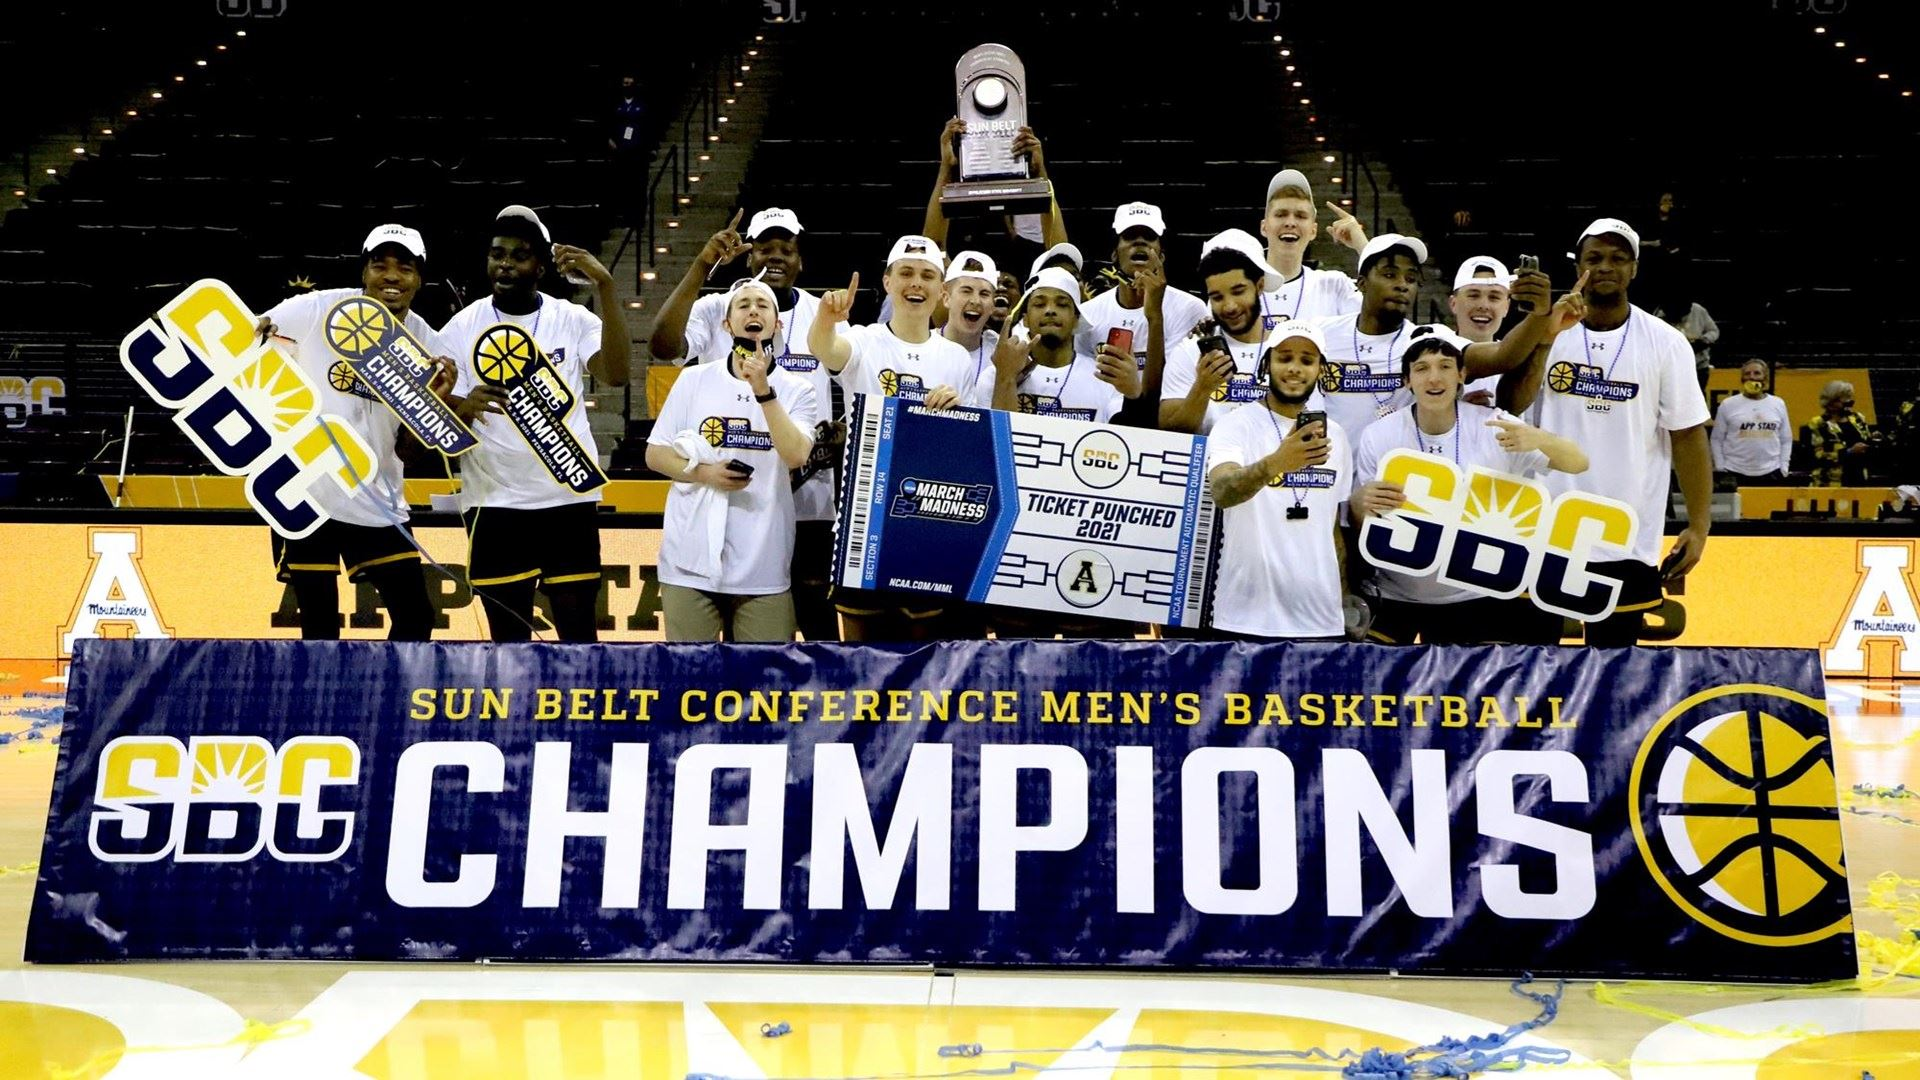 CHAMPS! App State Secures NCAA Bid with SBC Tourney Title